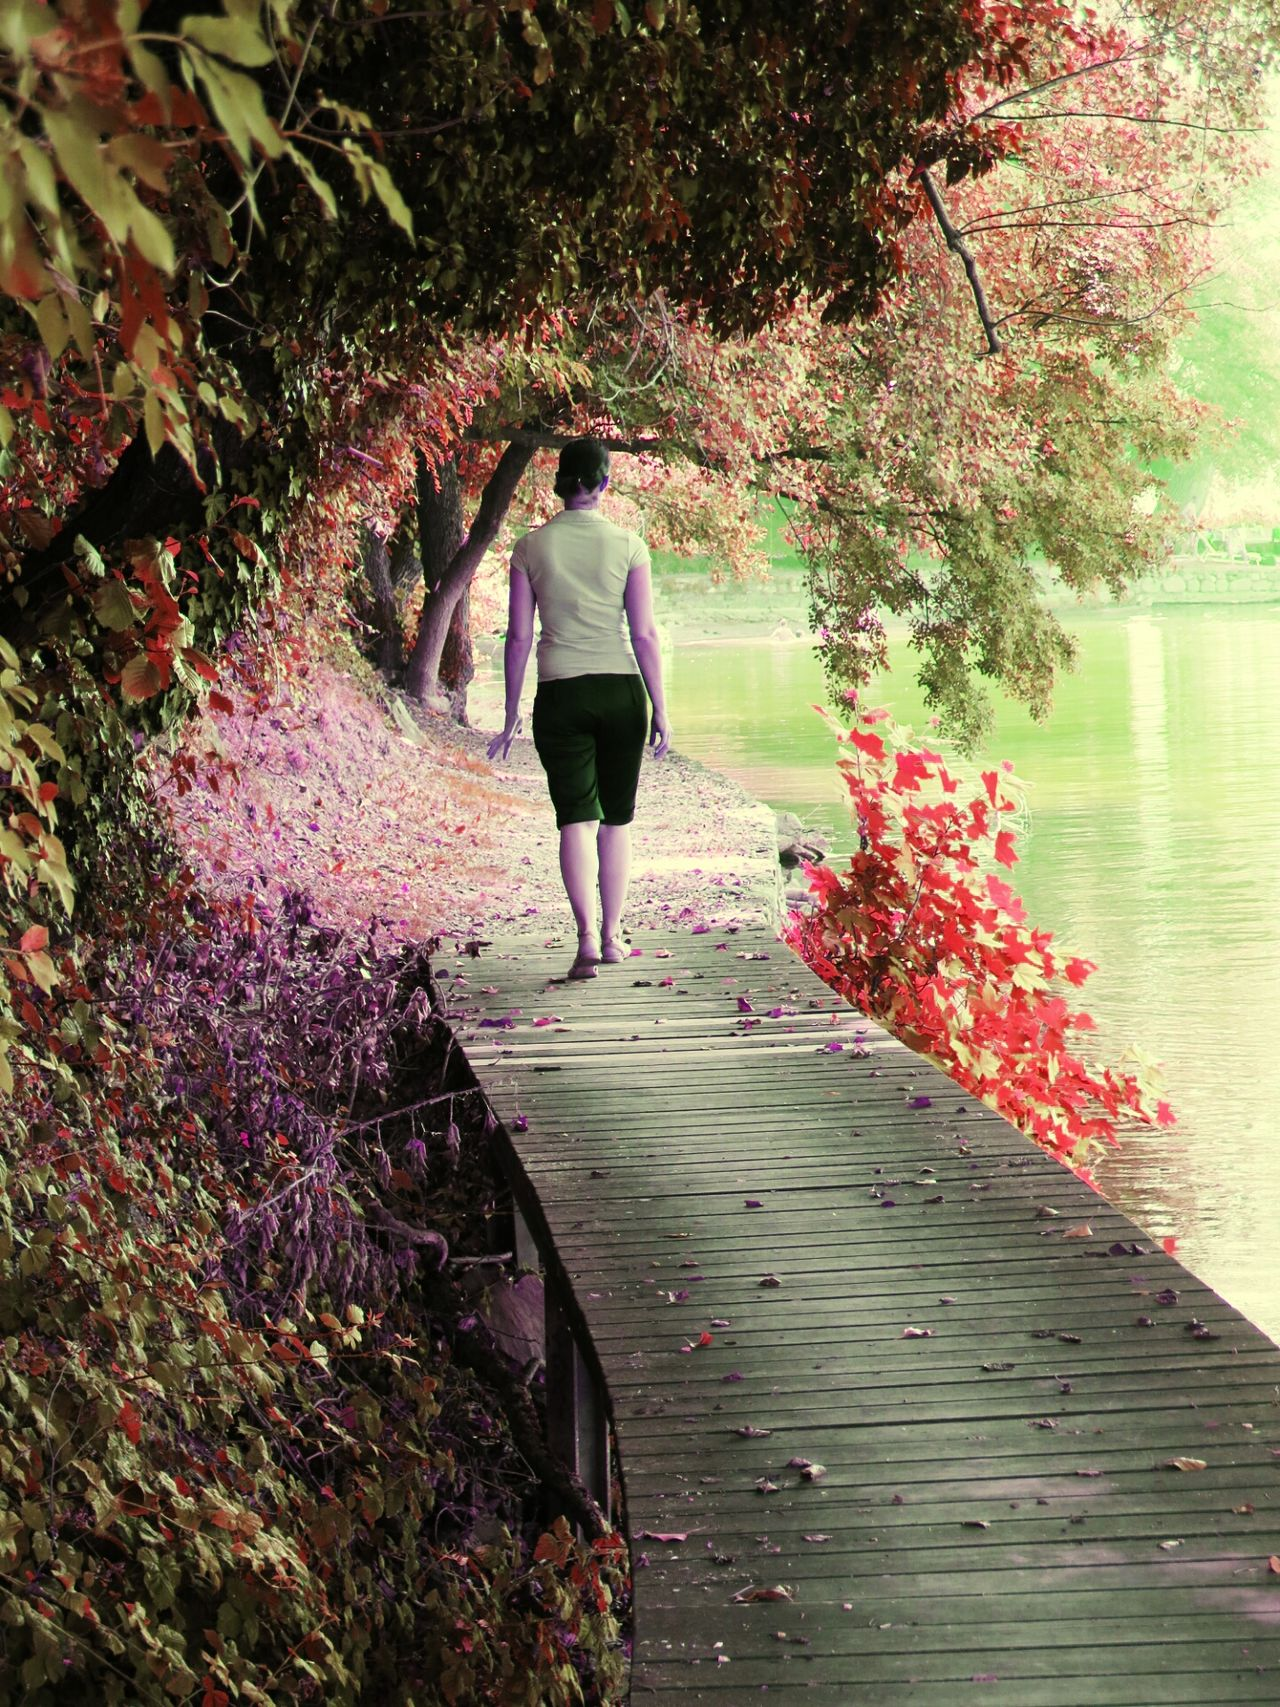 Walking Water Nature Women Tree Full Length Growth One Person Only Women Outdoors Adult Beauty In Nature Day Real People One Woman Only Adults Only People Freshness EyeEmNewHere EyeEm Gallery The Week Of Eyeem Holding Retro Styled The Week On EyeEem Photographing